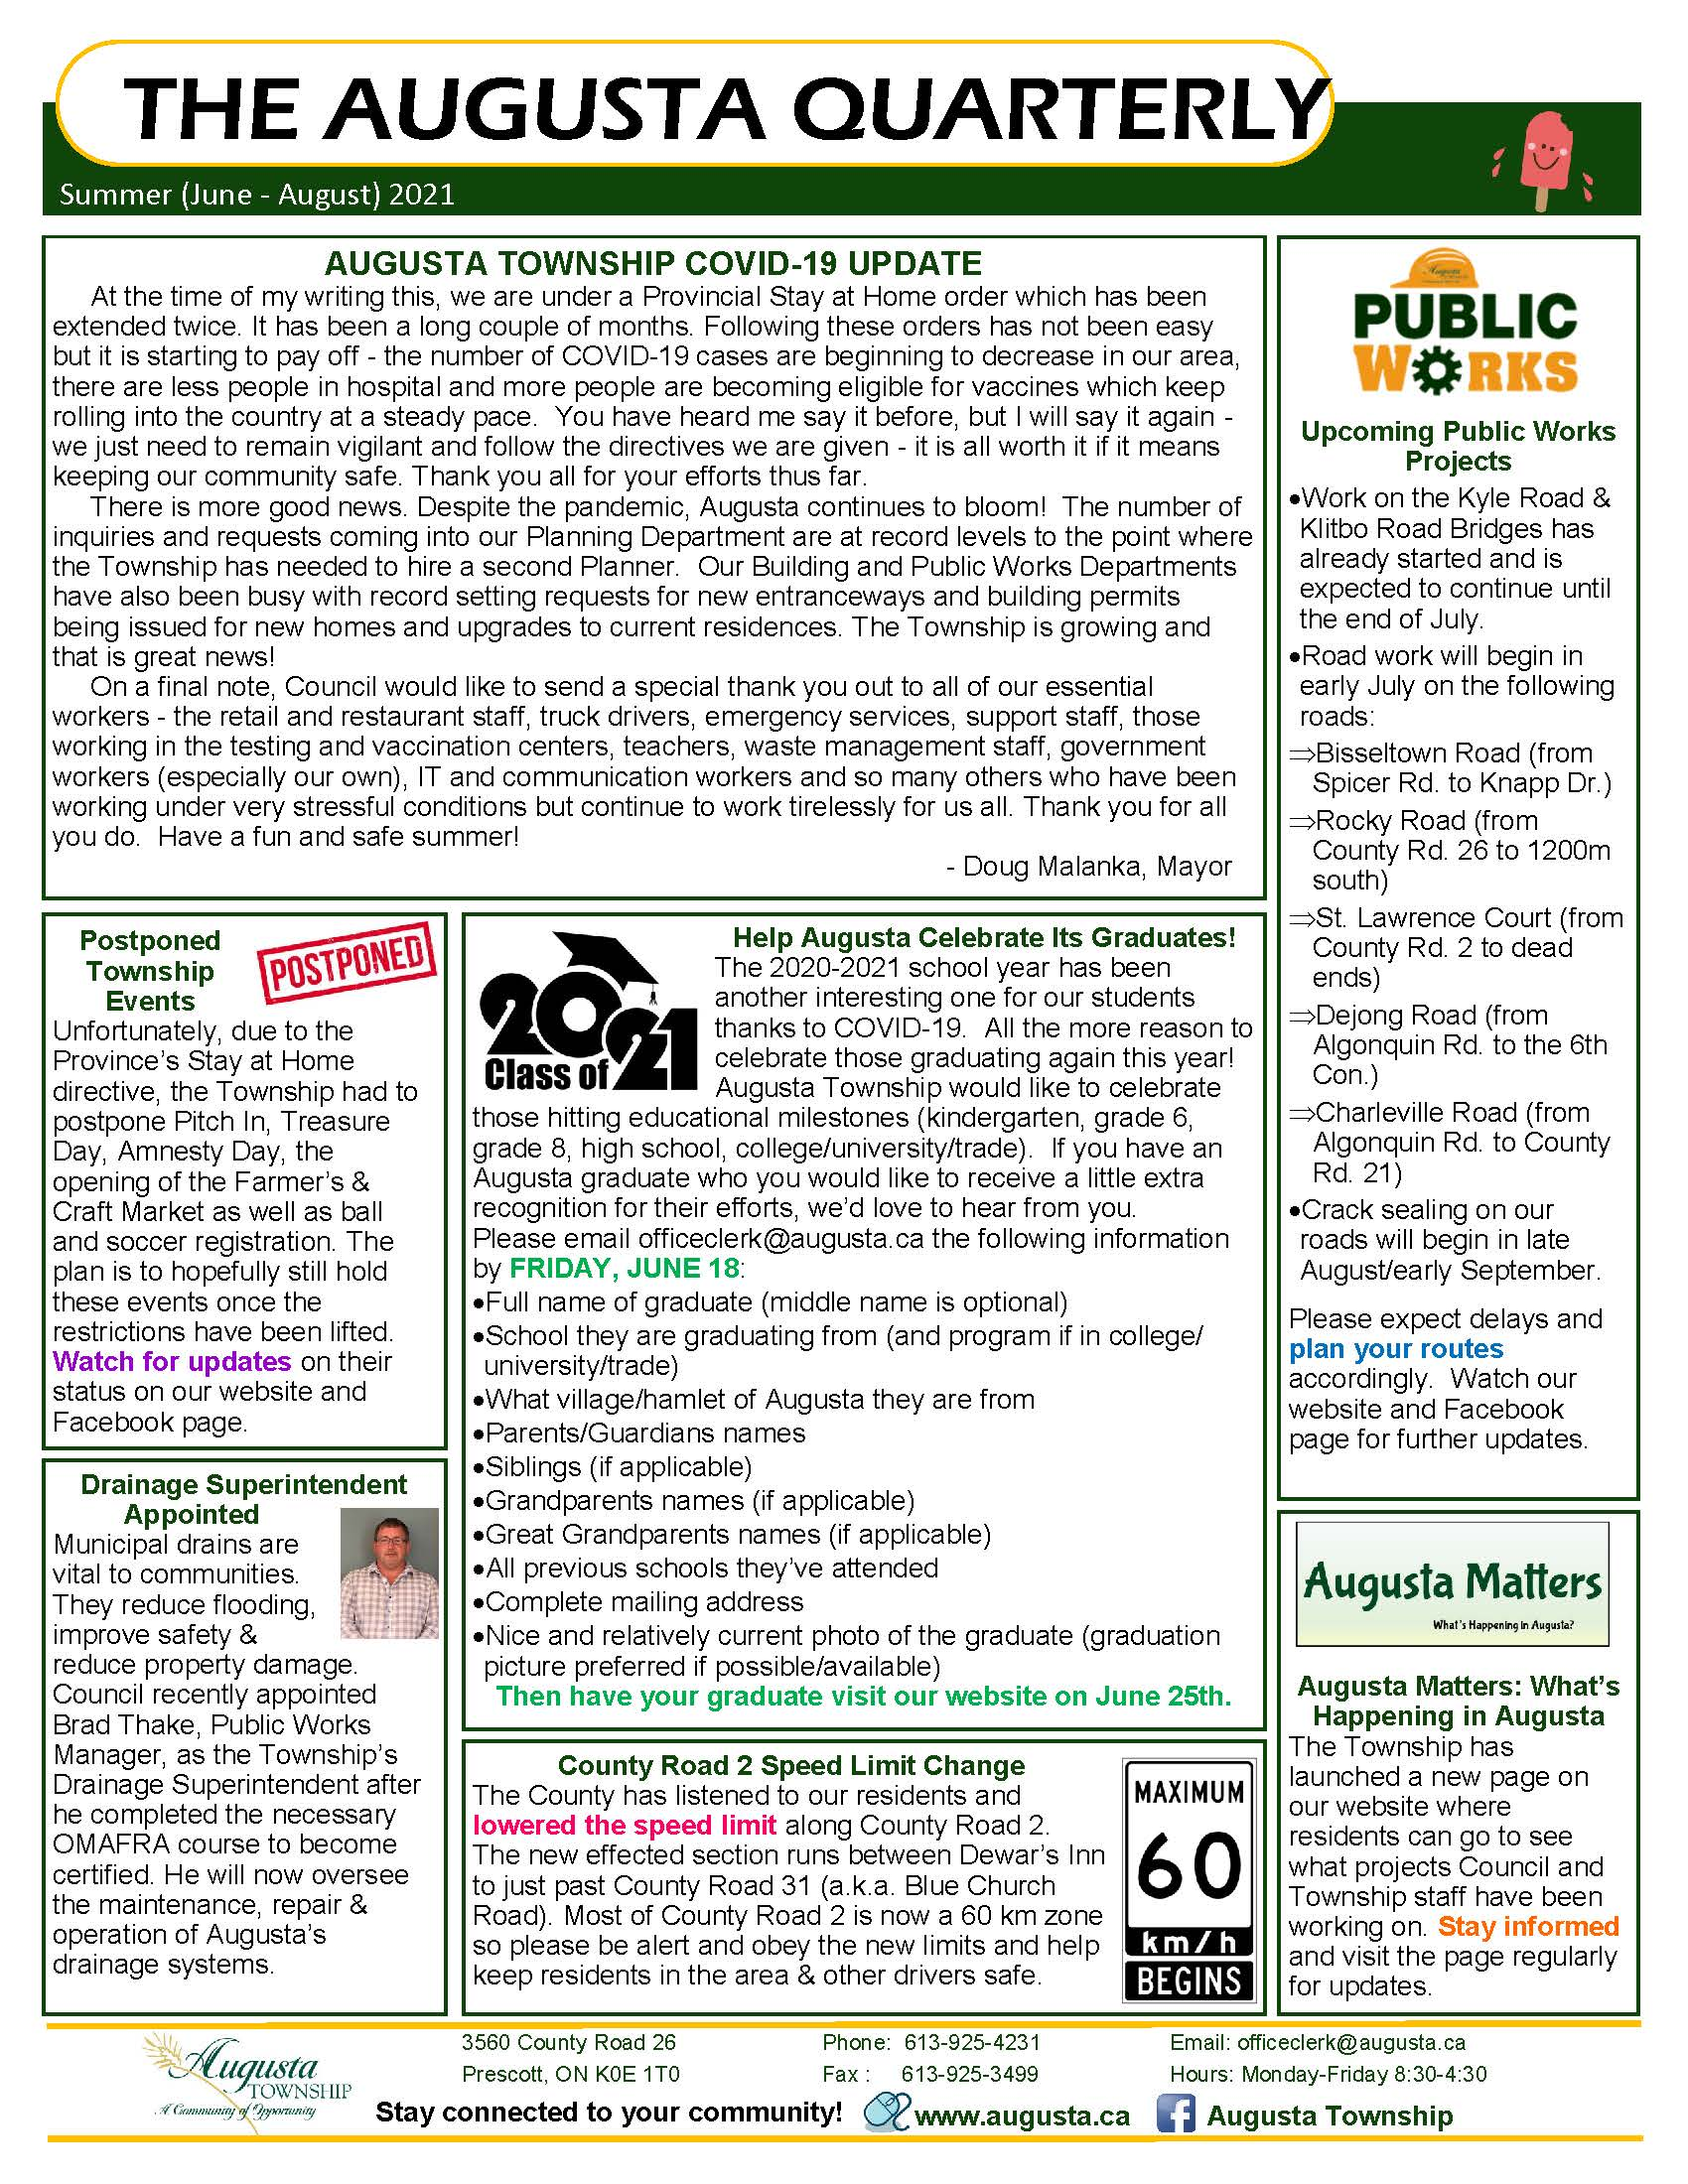 page 1 summer 2021 edition of the augusta quarterly newsletter